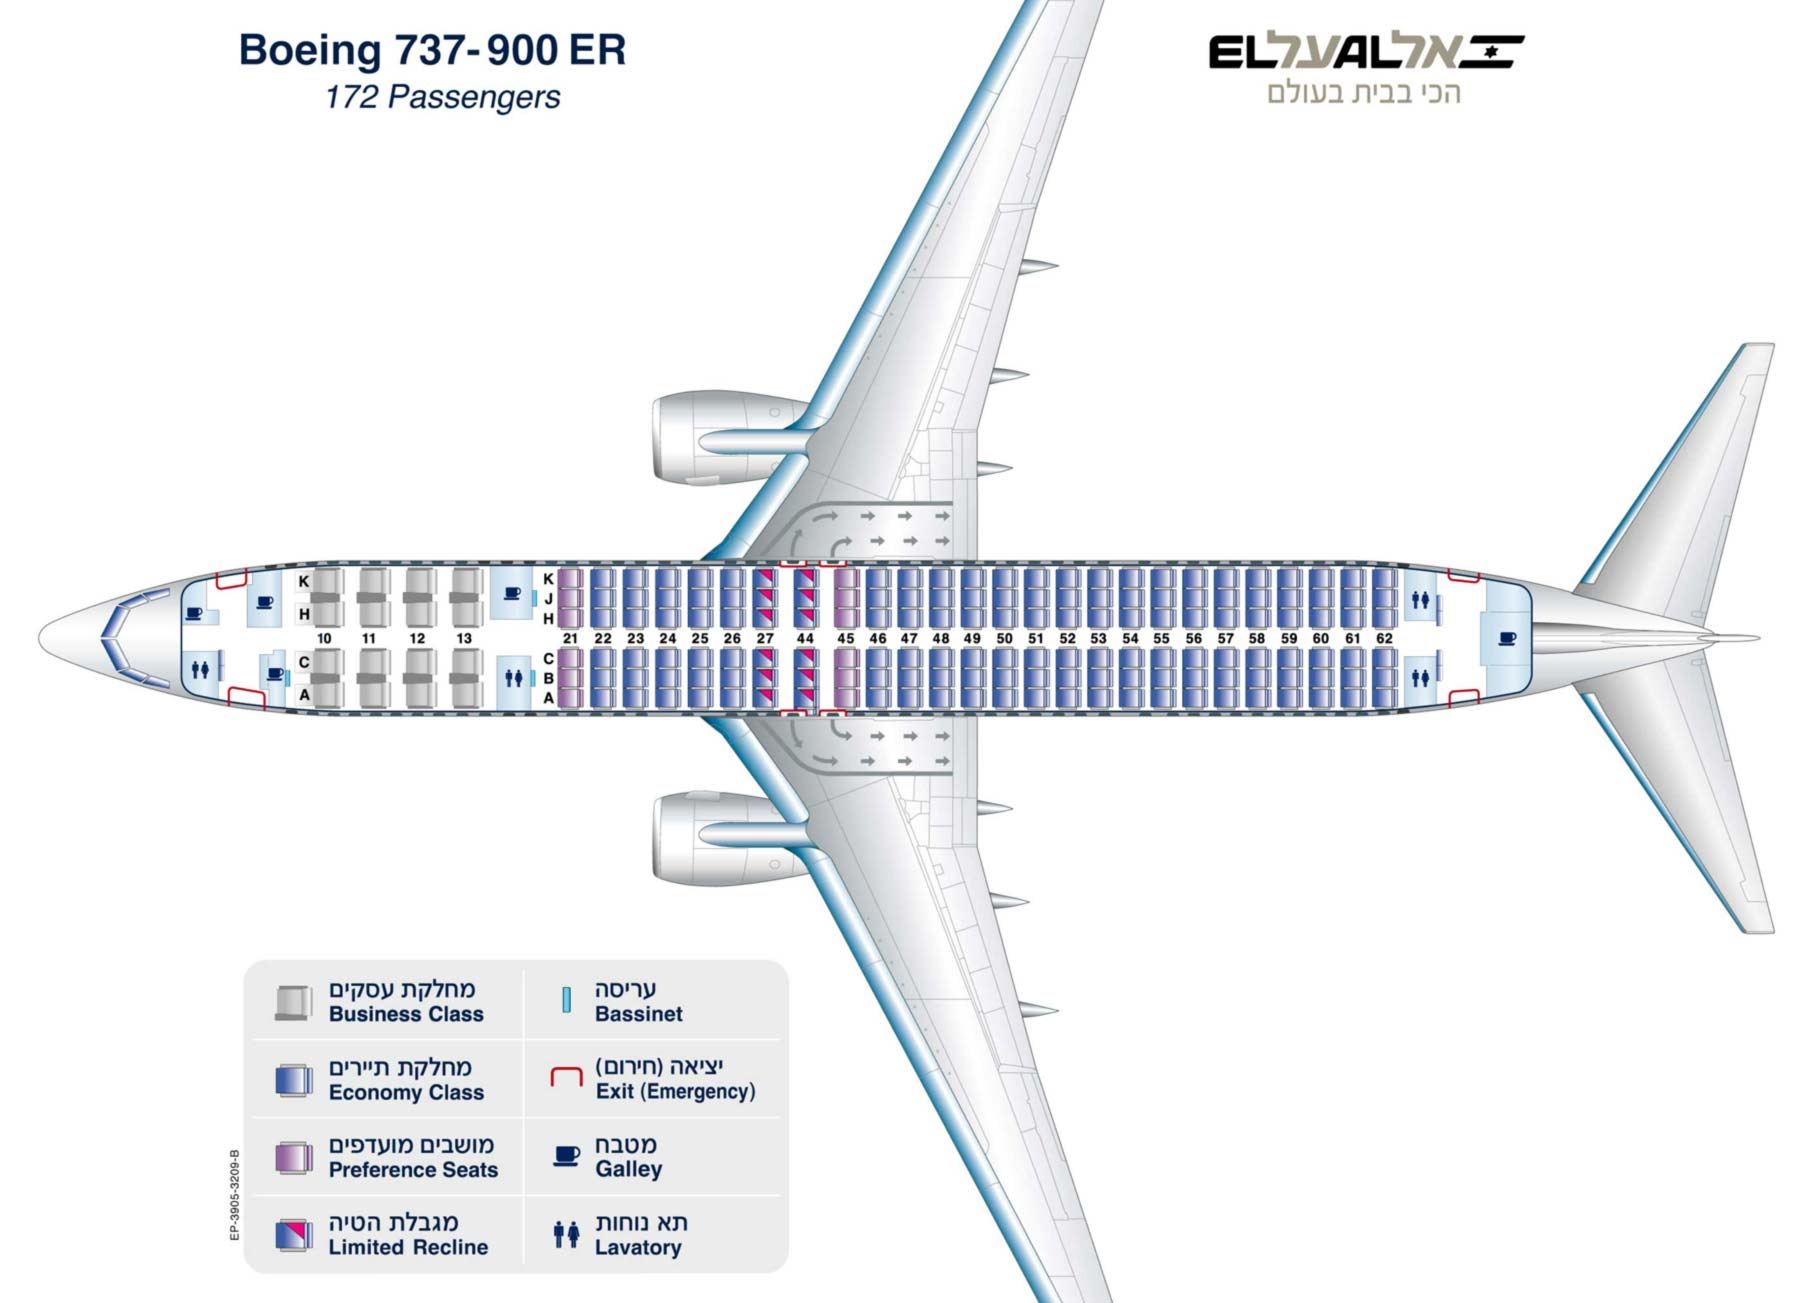 boeing 777 200 seat map with Our Fleet on Watch together with Boeing 777 200 Singapore Airlines Photos And Description Of The Plane likewise Watch also Fleet Information also Klm royal dutch airlines seating maps.